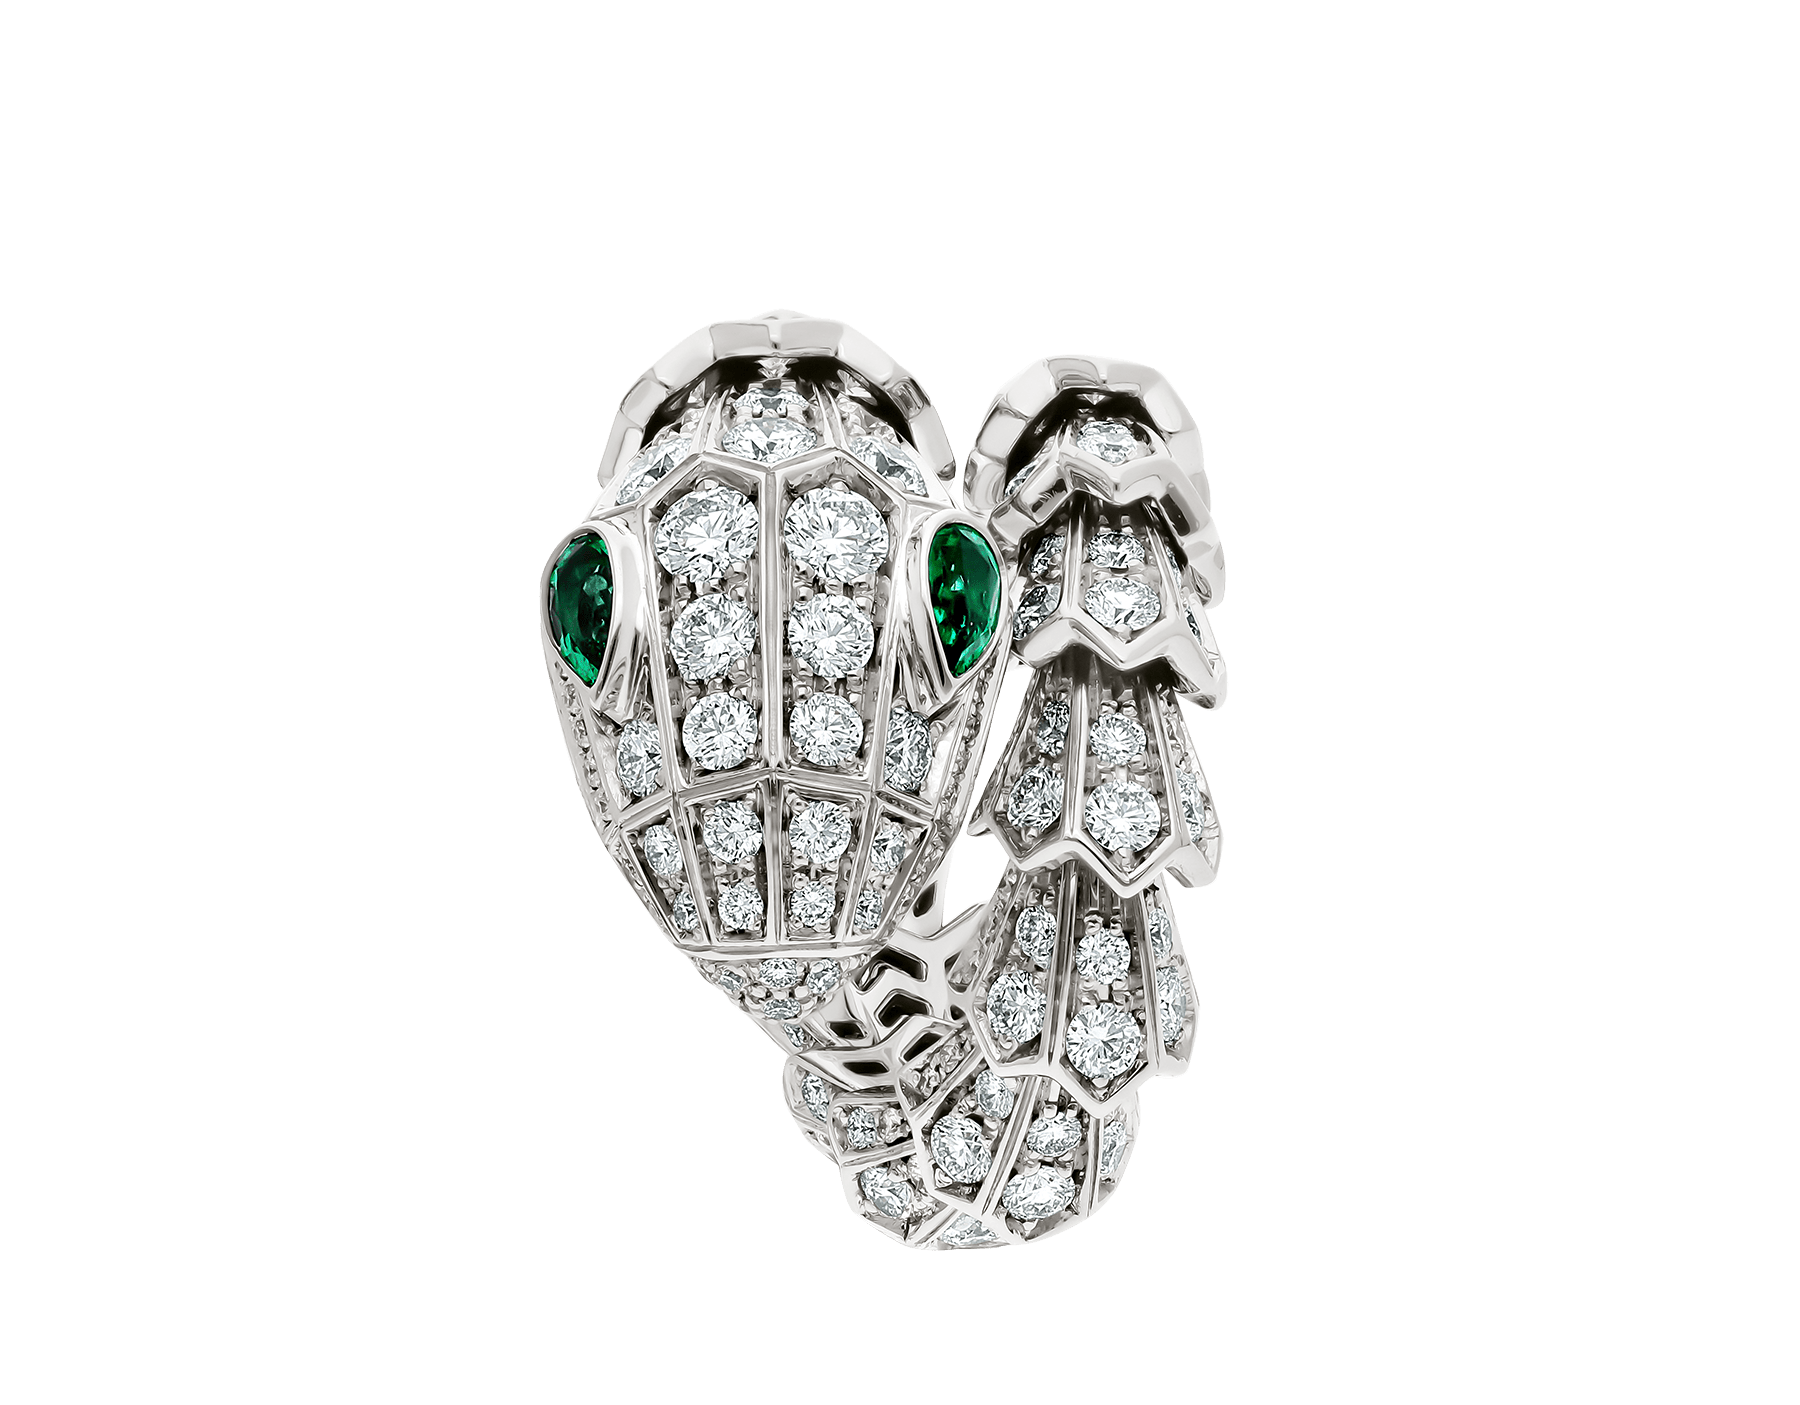 Serpenti 18 kt white gold ring set with pavé diamonds and two emerald eyes. AN858323 image 2